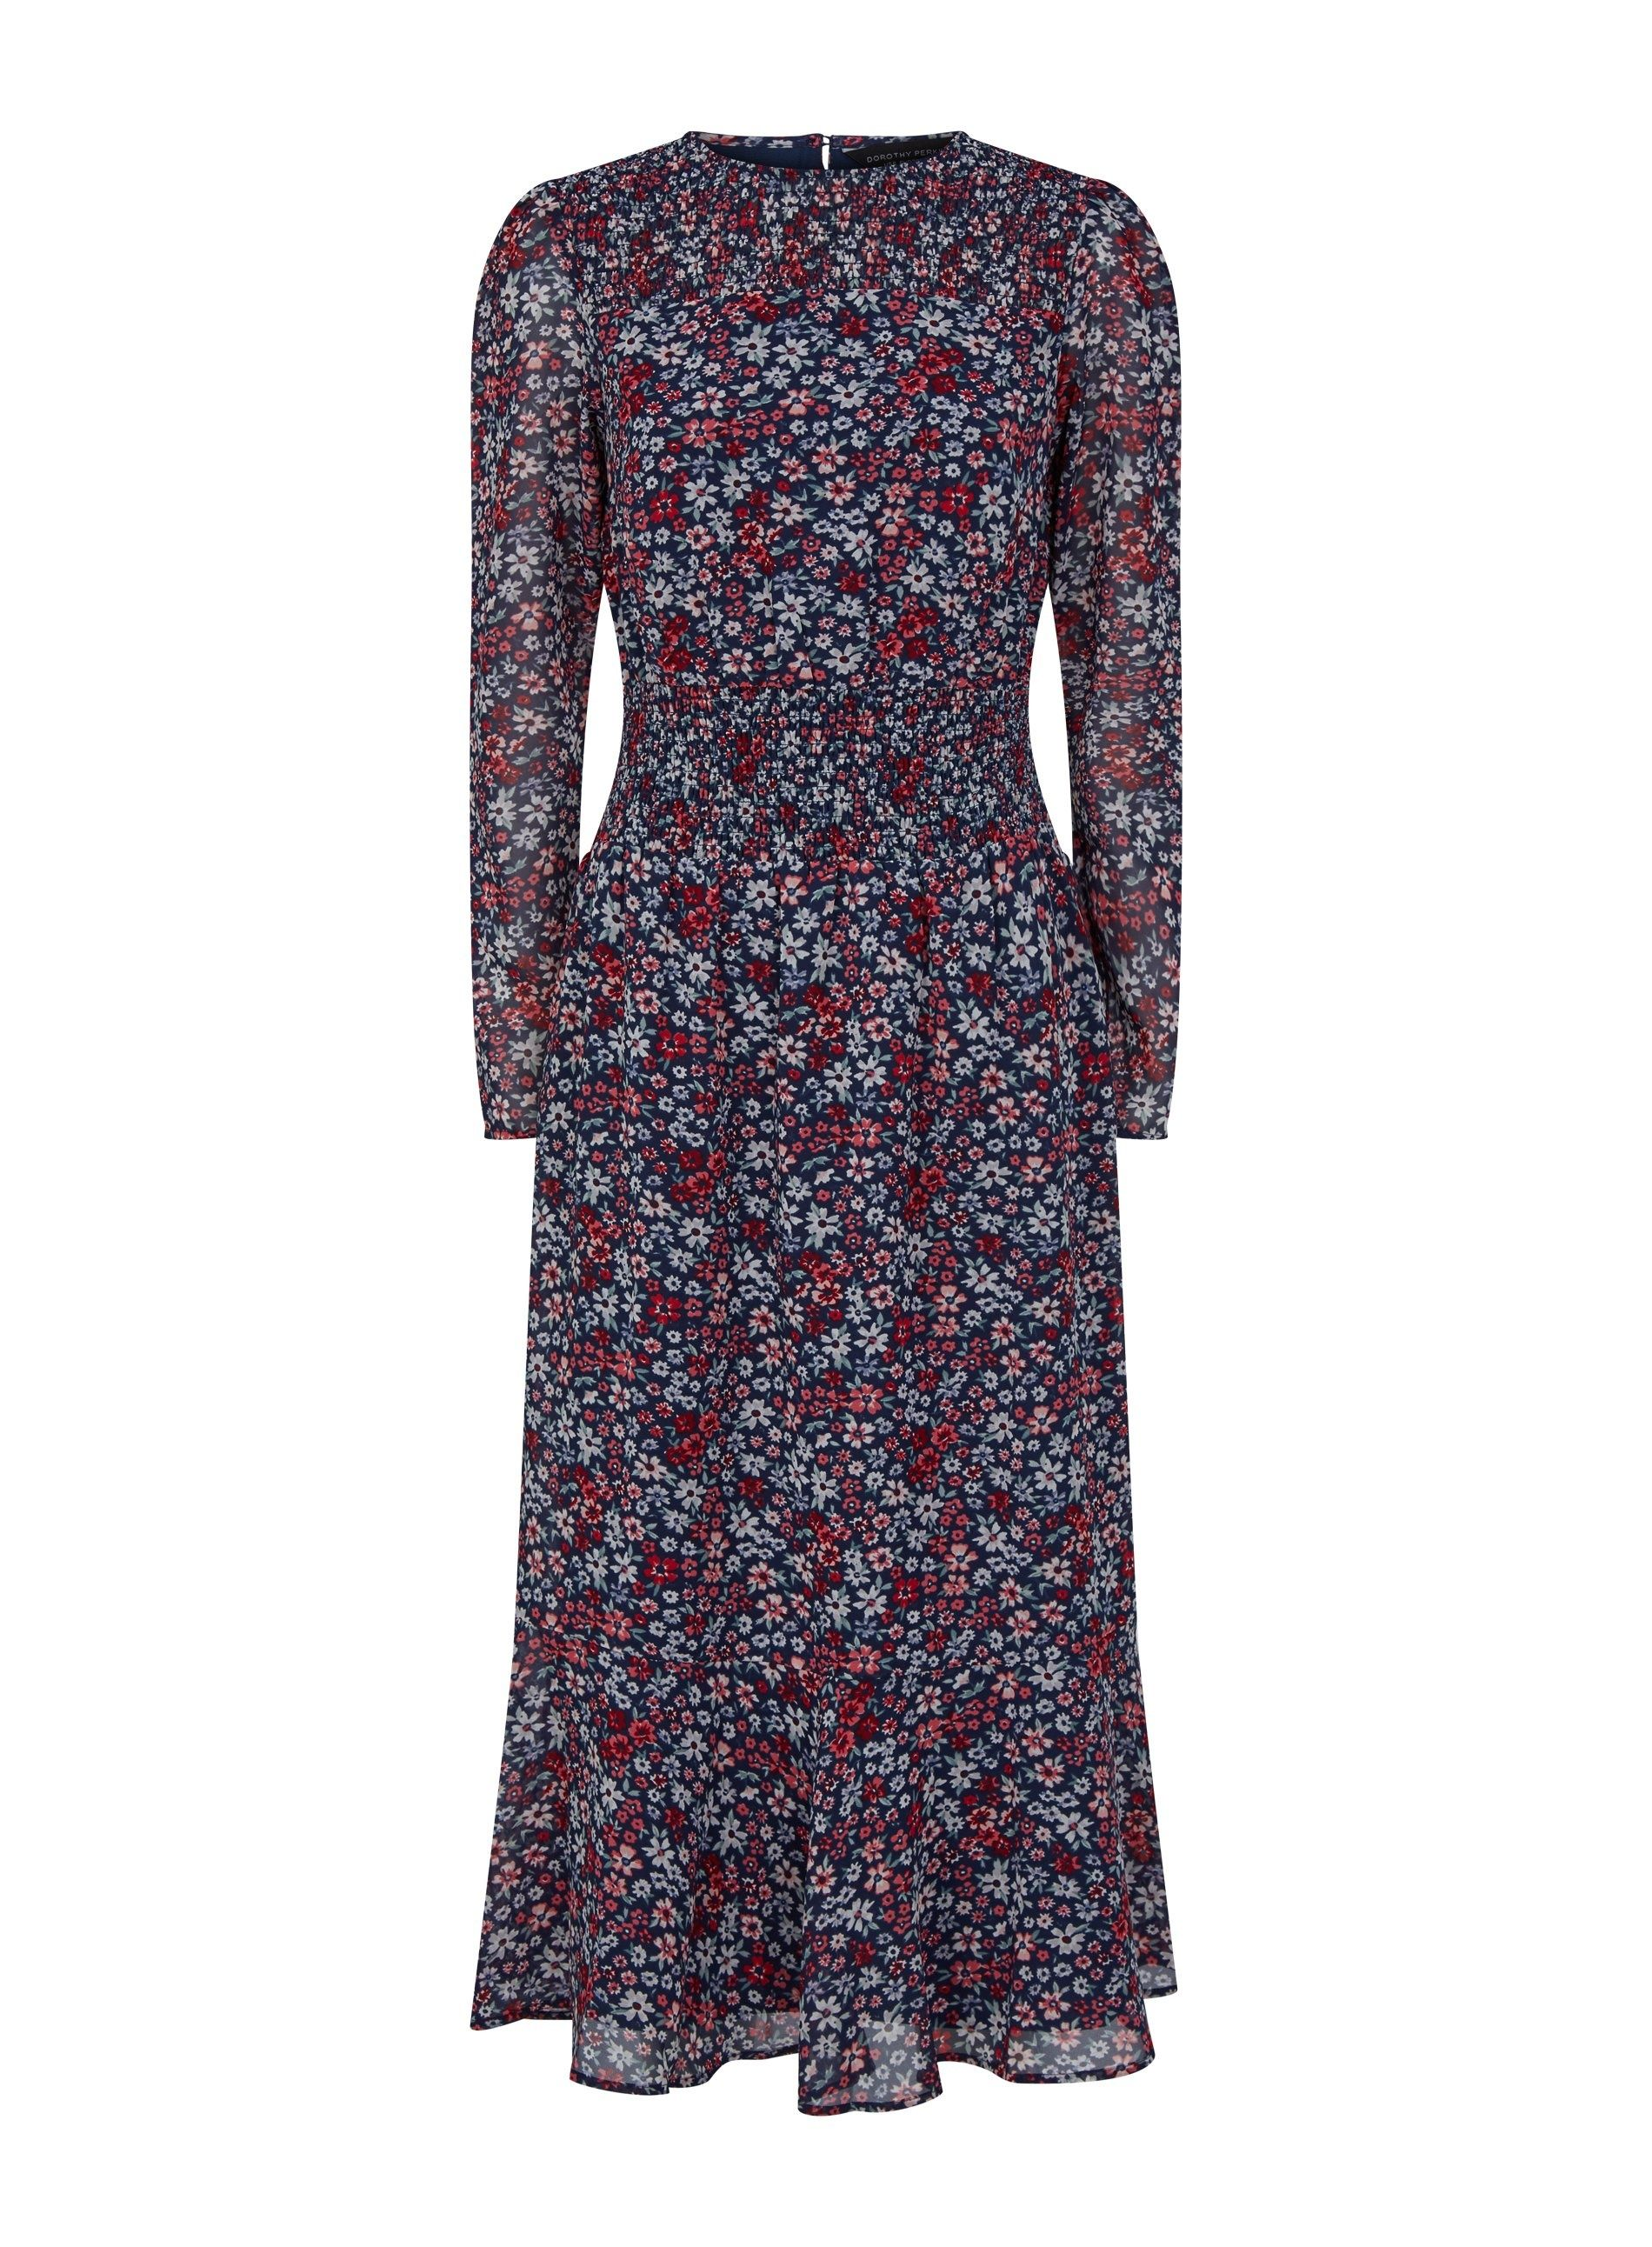 Dorothy Perkins Womens Navy Floral Sheered Midaxi Dress Long Sleeve Round Neck